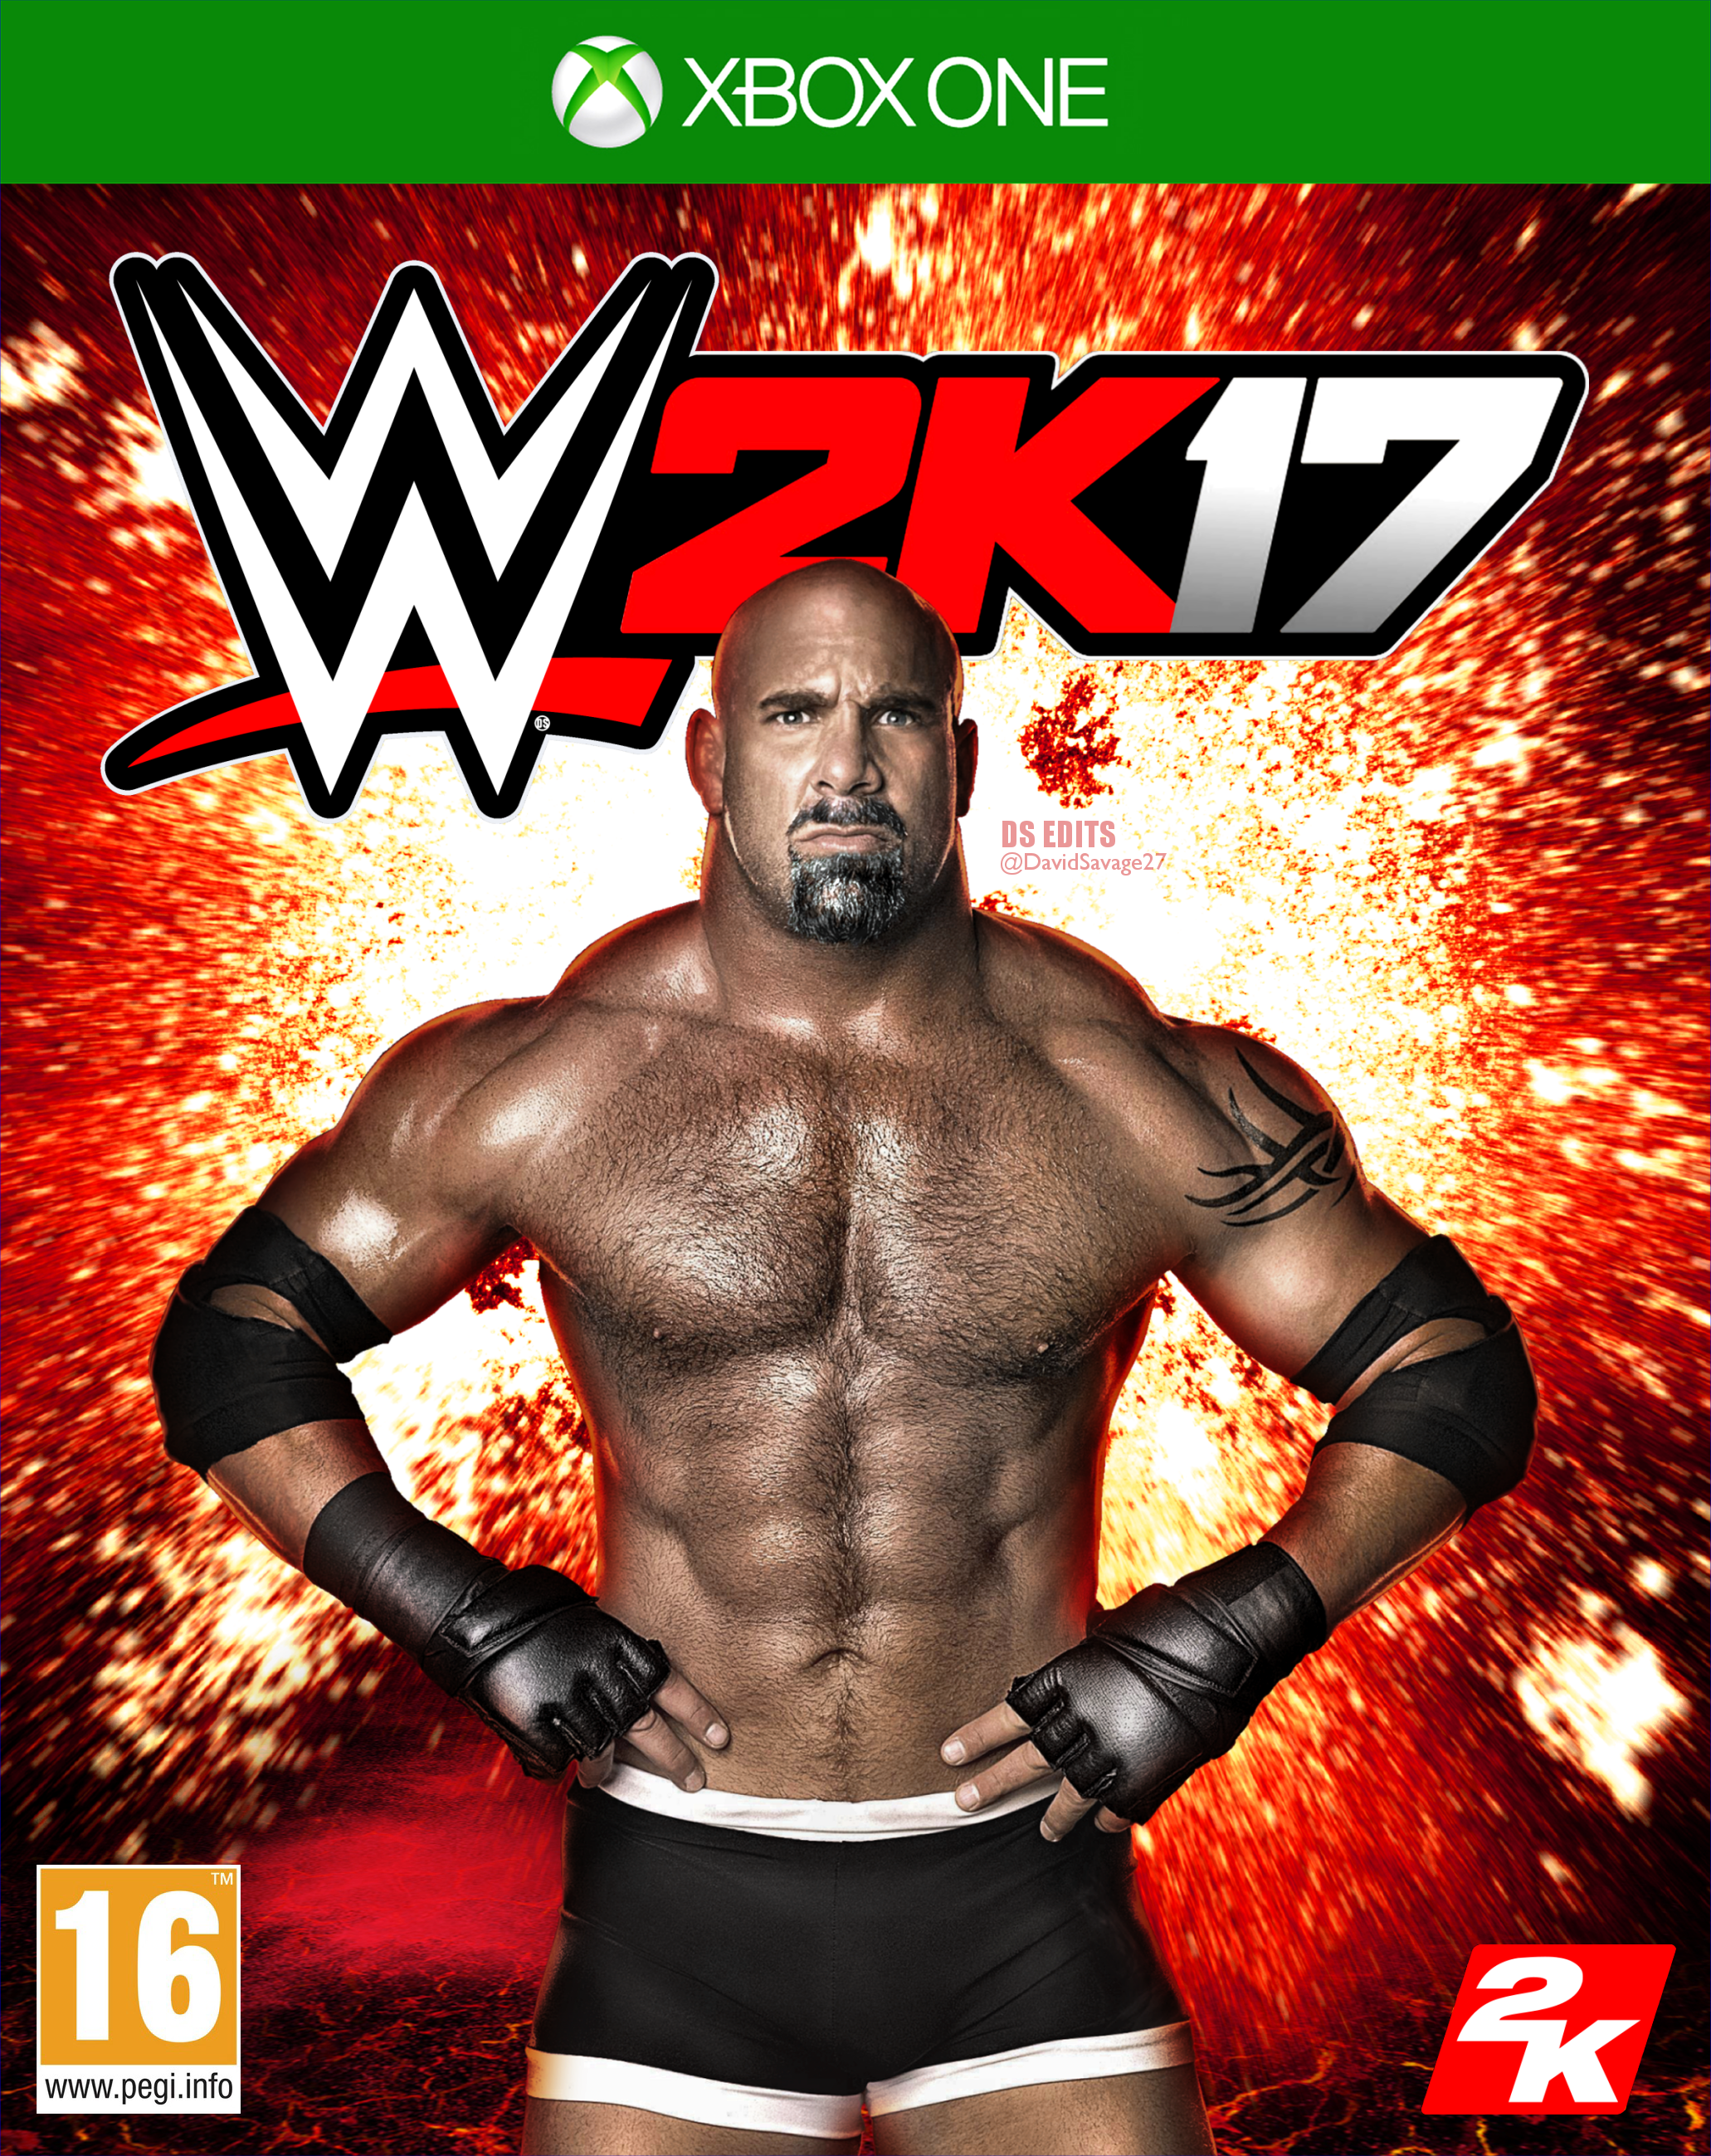 Book Cover Background Xbox One ~ Wwe k goldberg xbox one cover by ultimate savage on